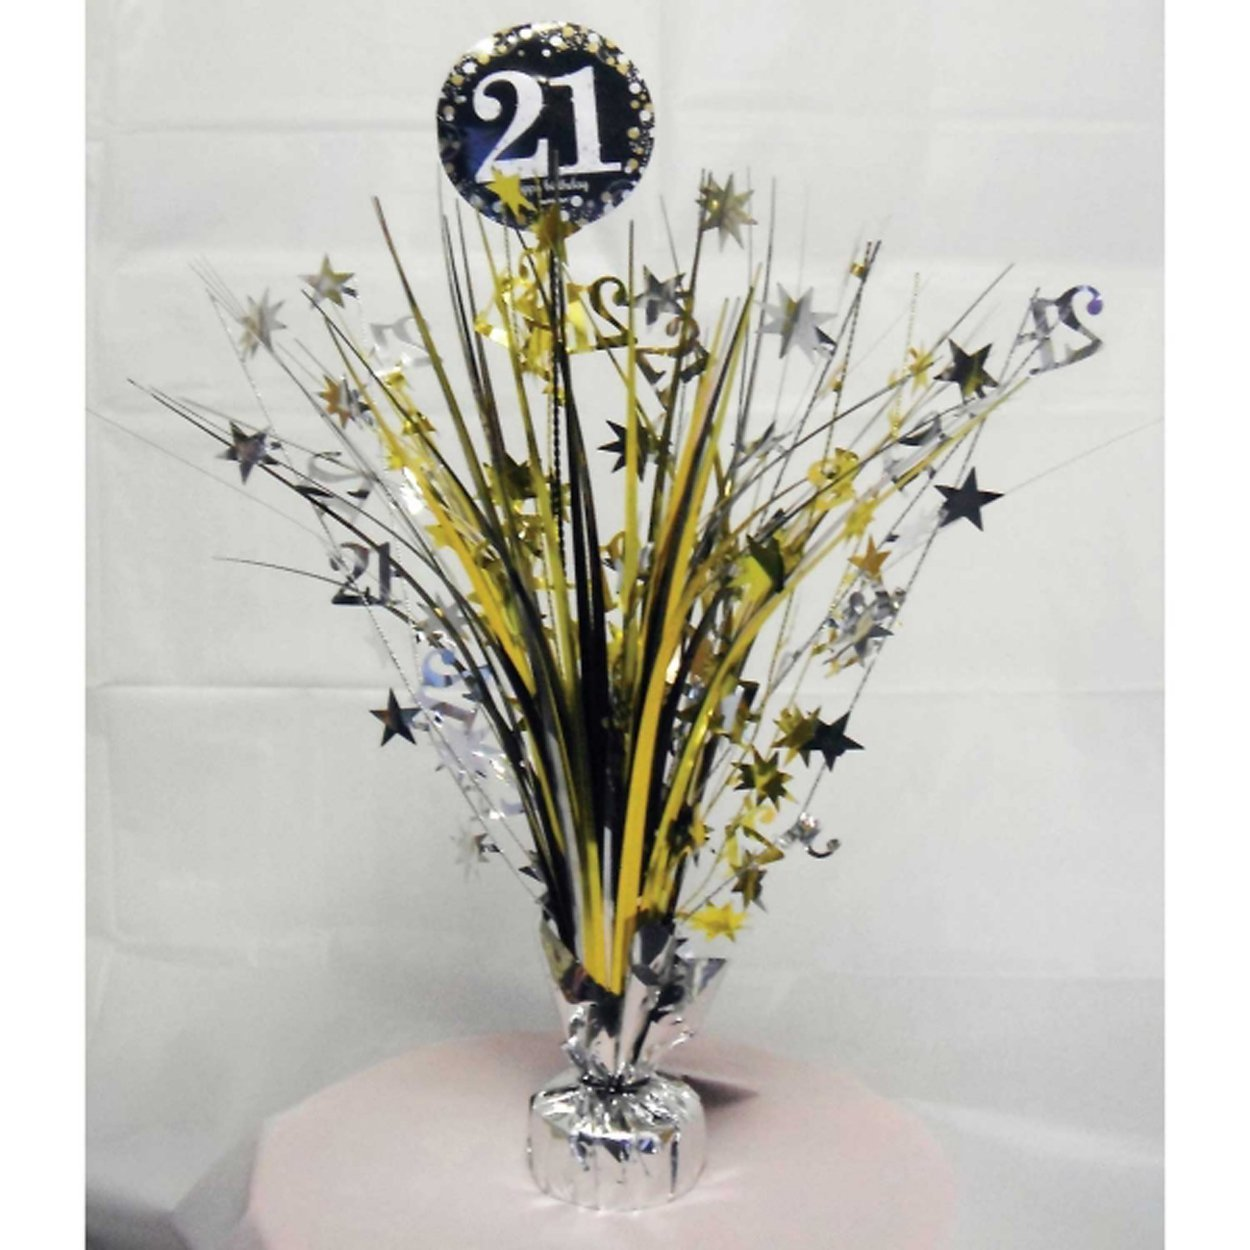 21st Birthday Spray Centrepiece Table Decoration Black Silver Gold Amazoncouk Toys Games